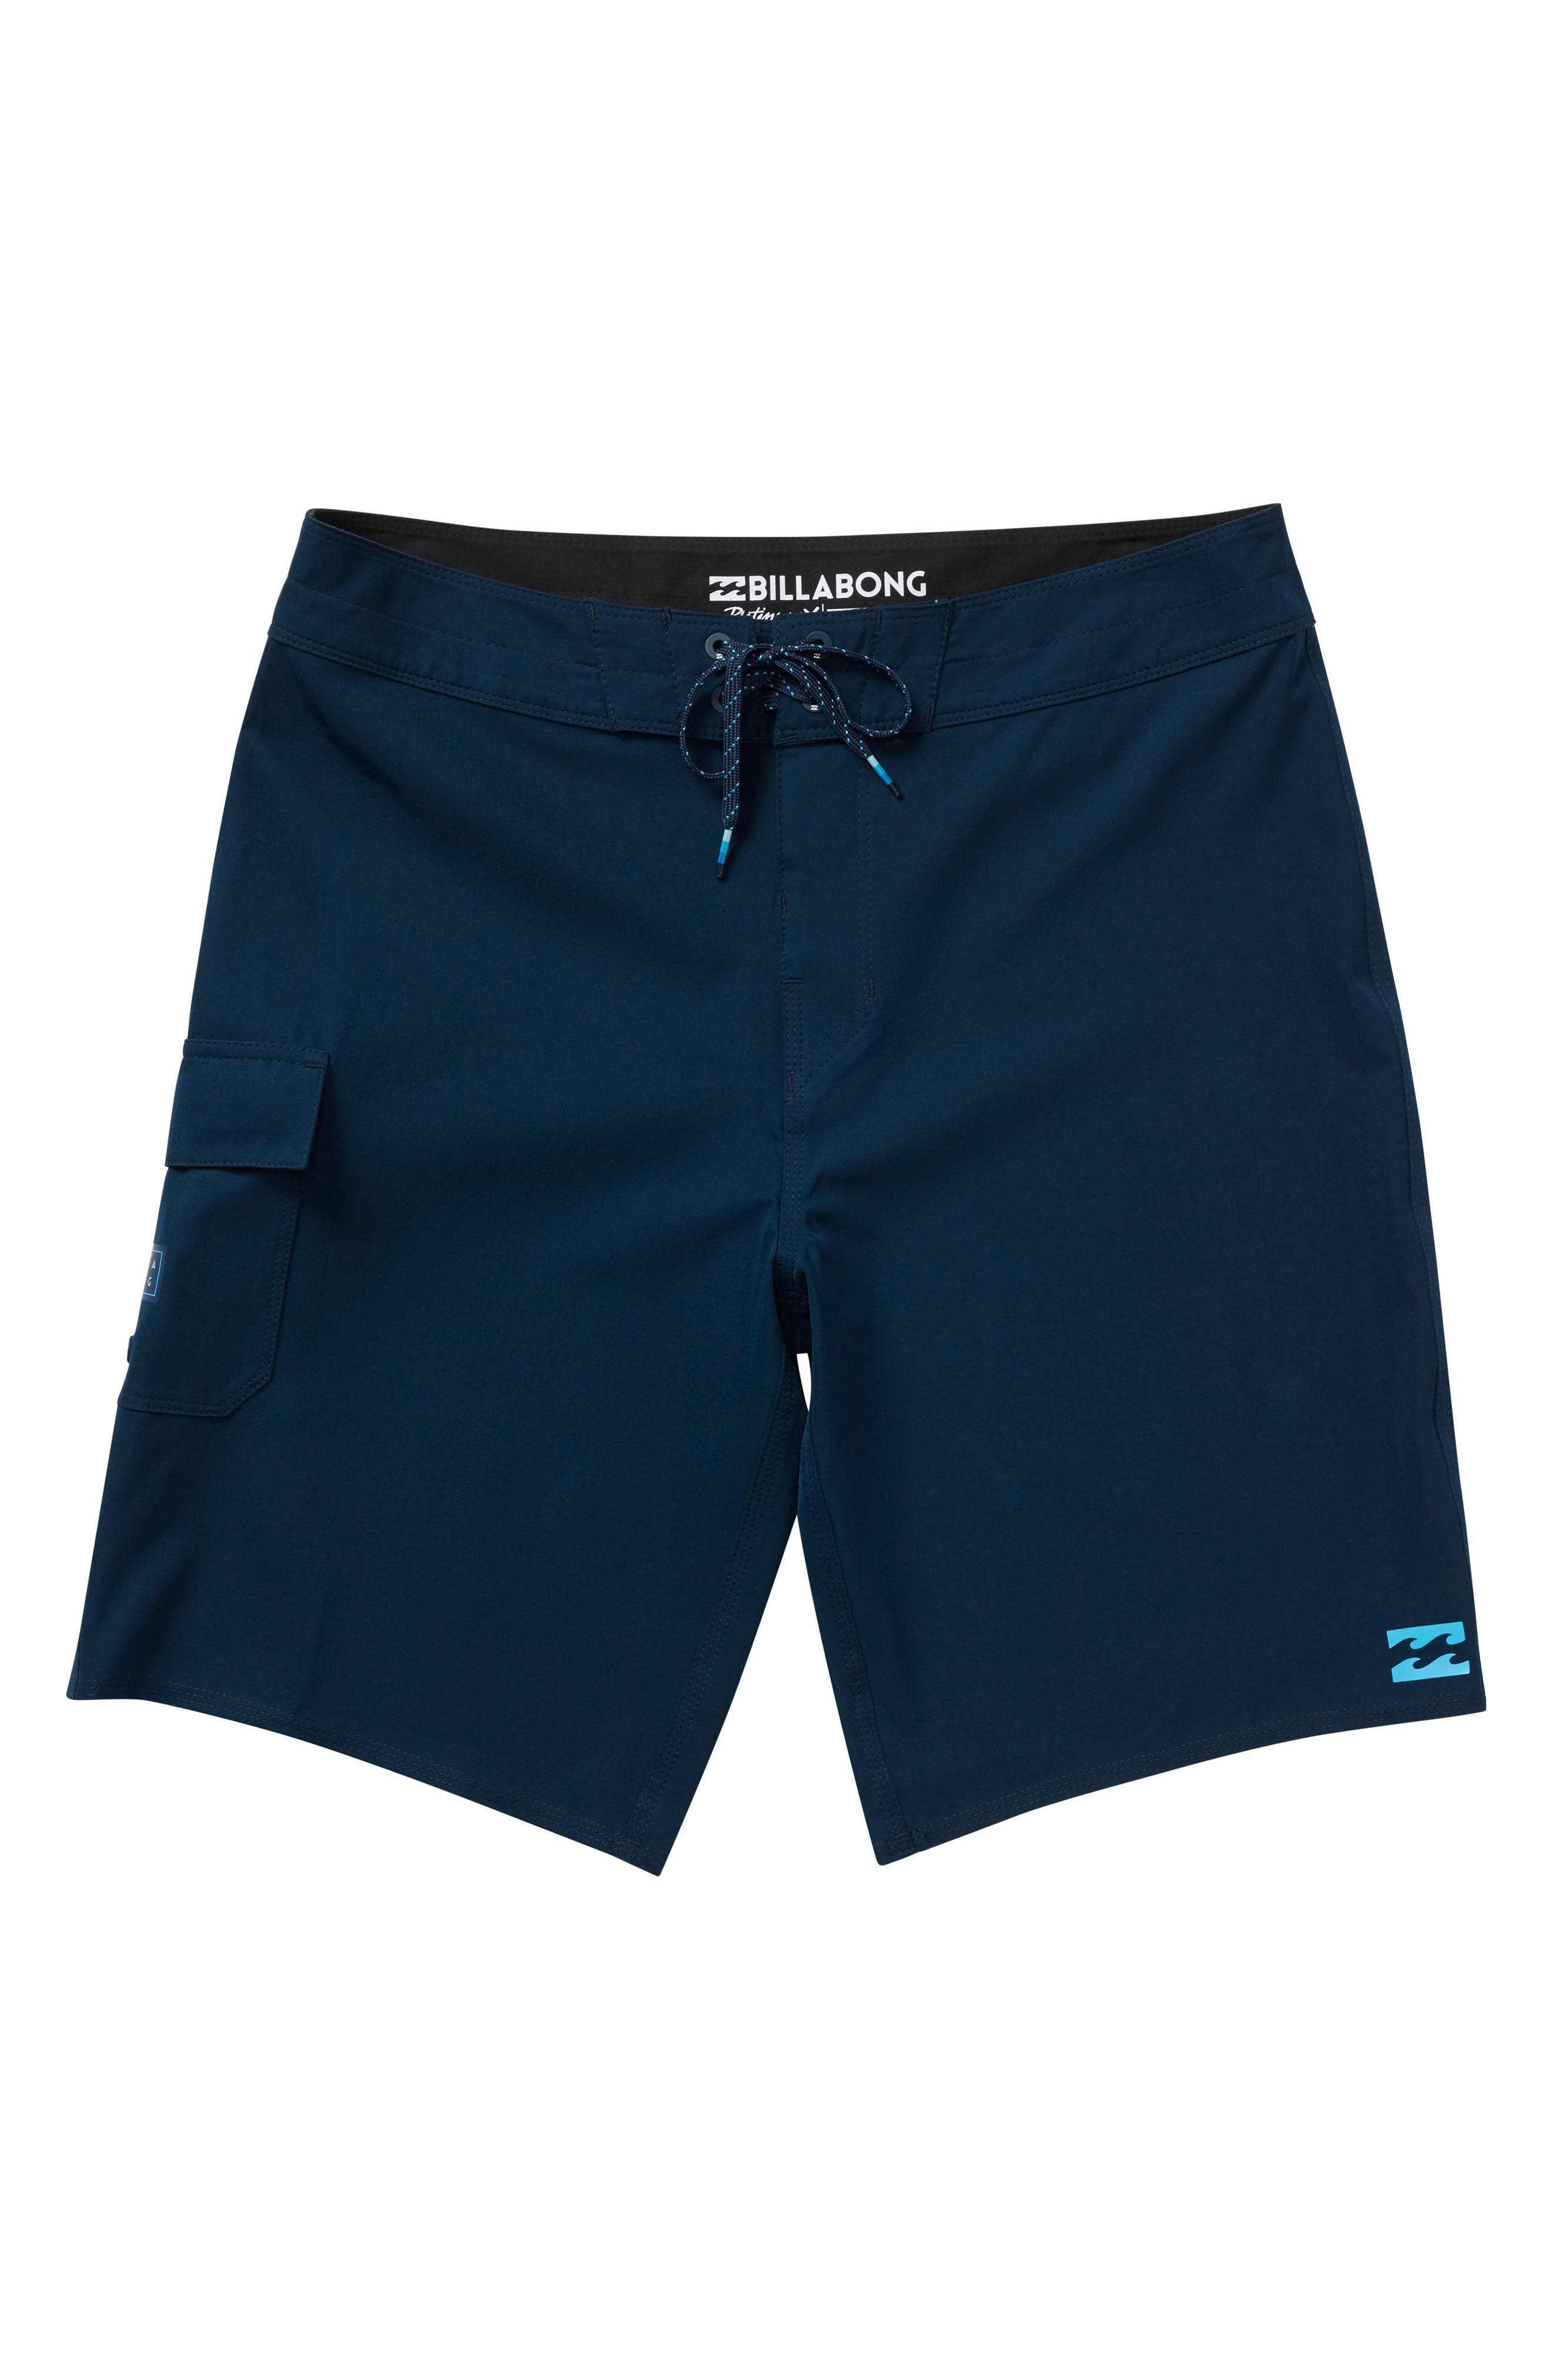 All Day X Board Shorts,                         Main,                         color, Navy